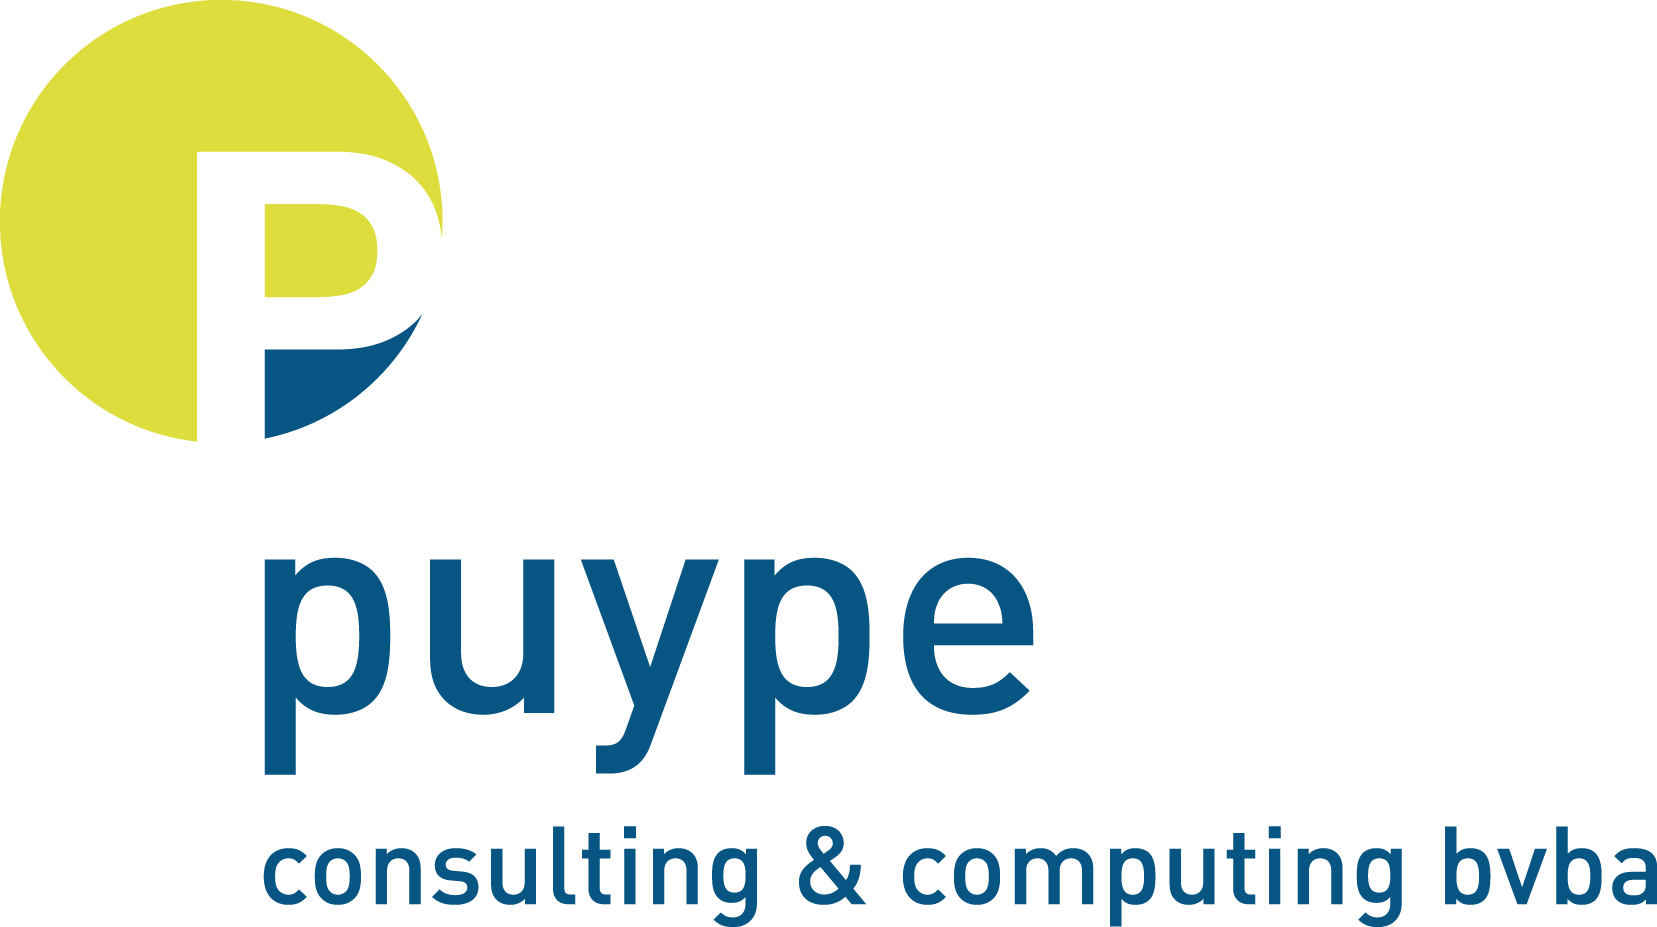 Puype consulting